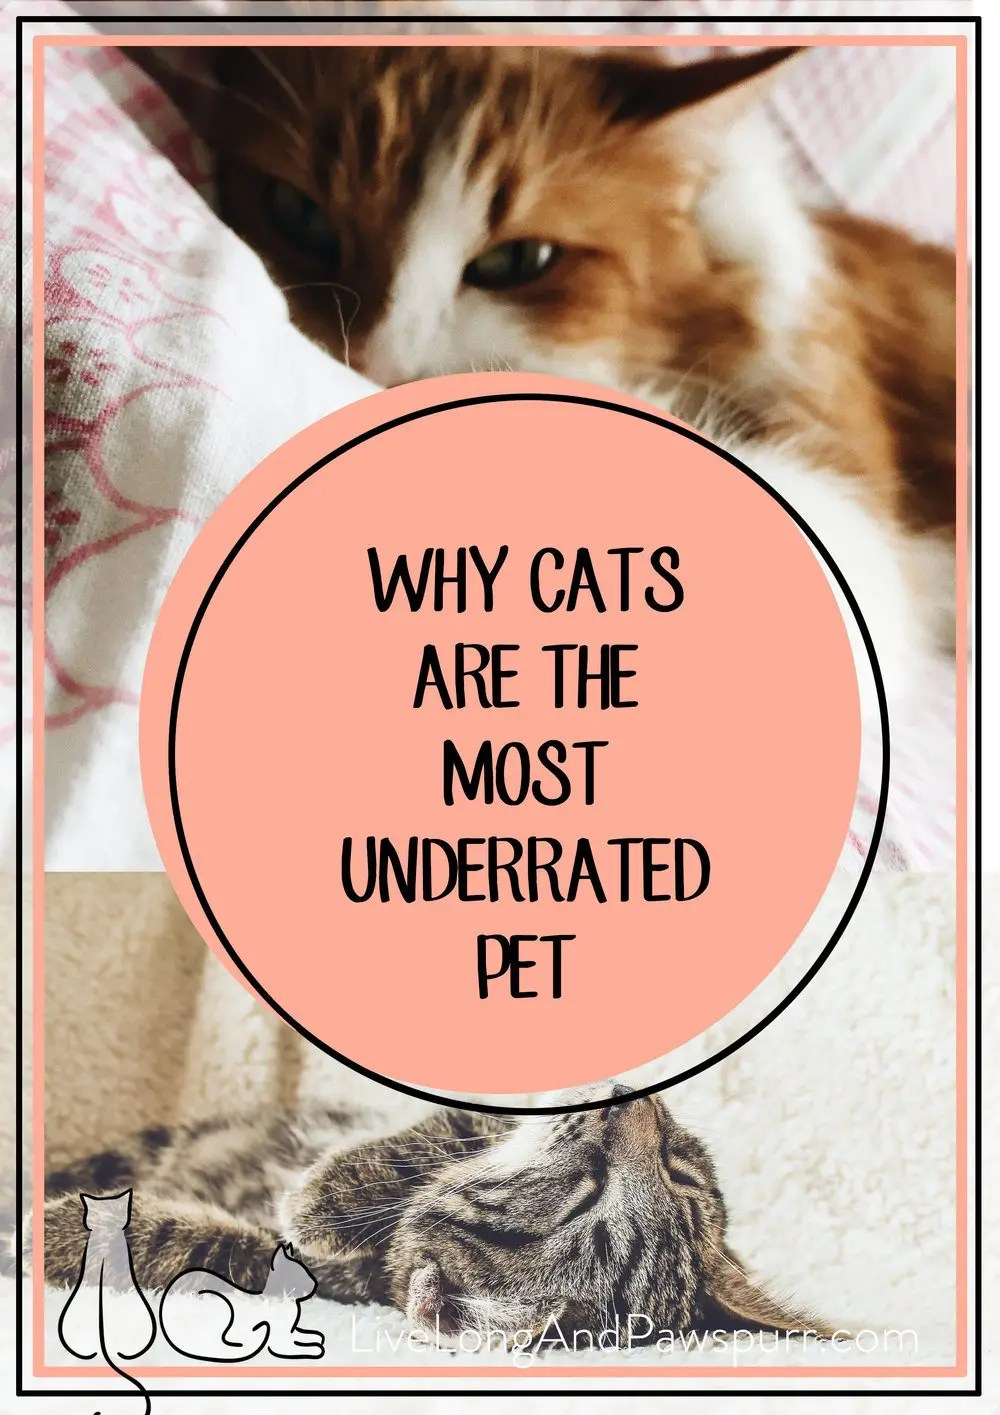 Why Cats are the Most Underrated Pet